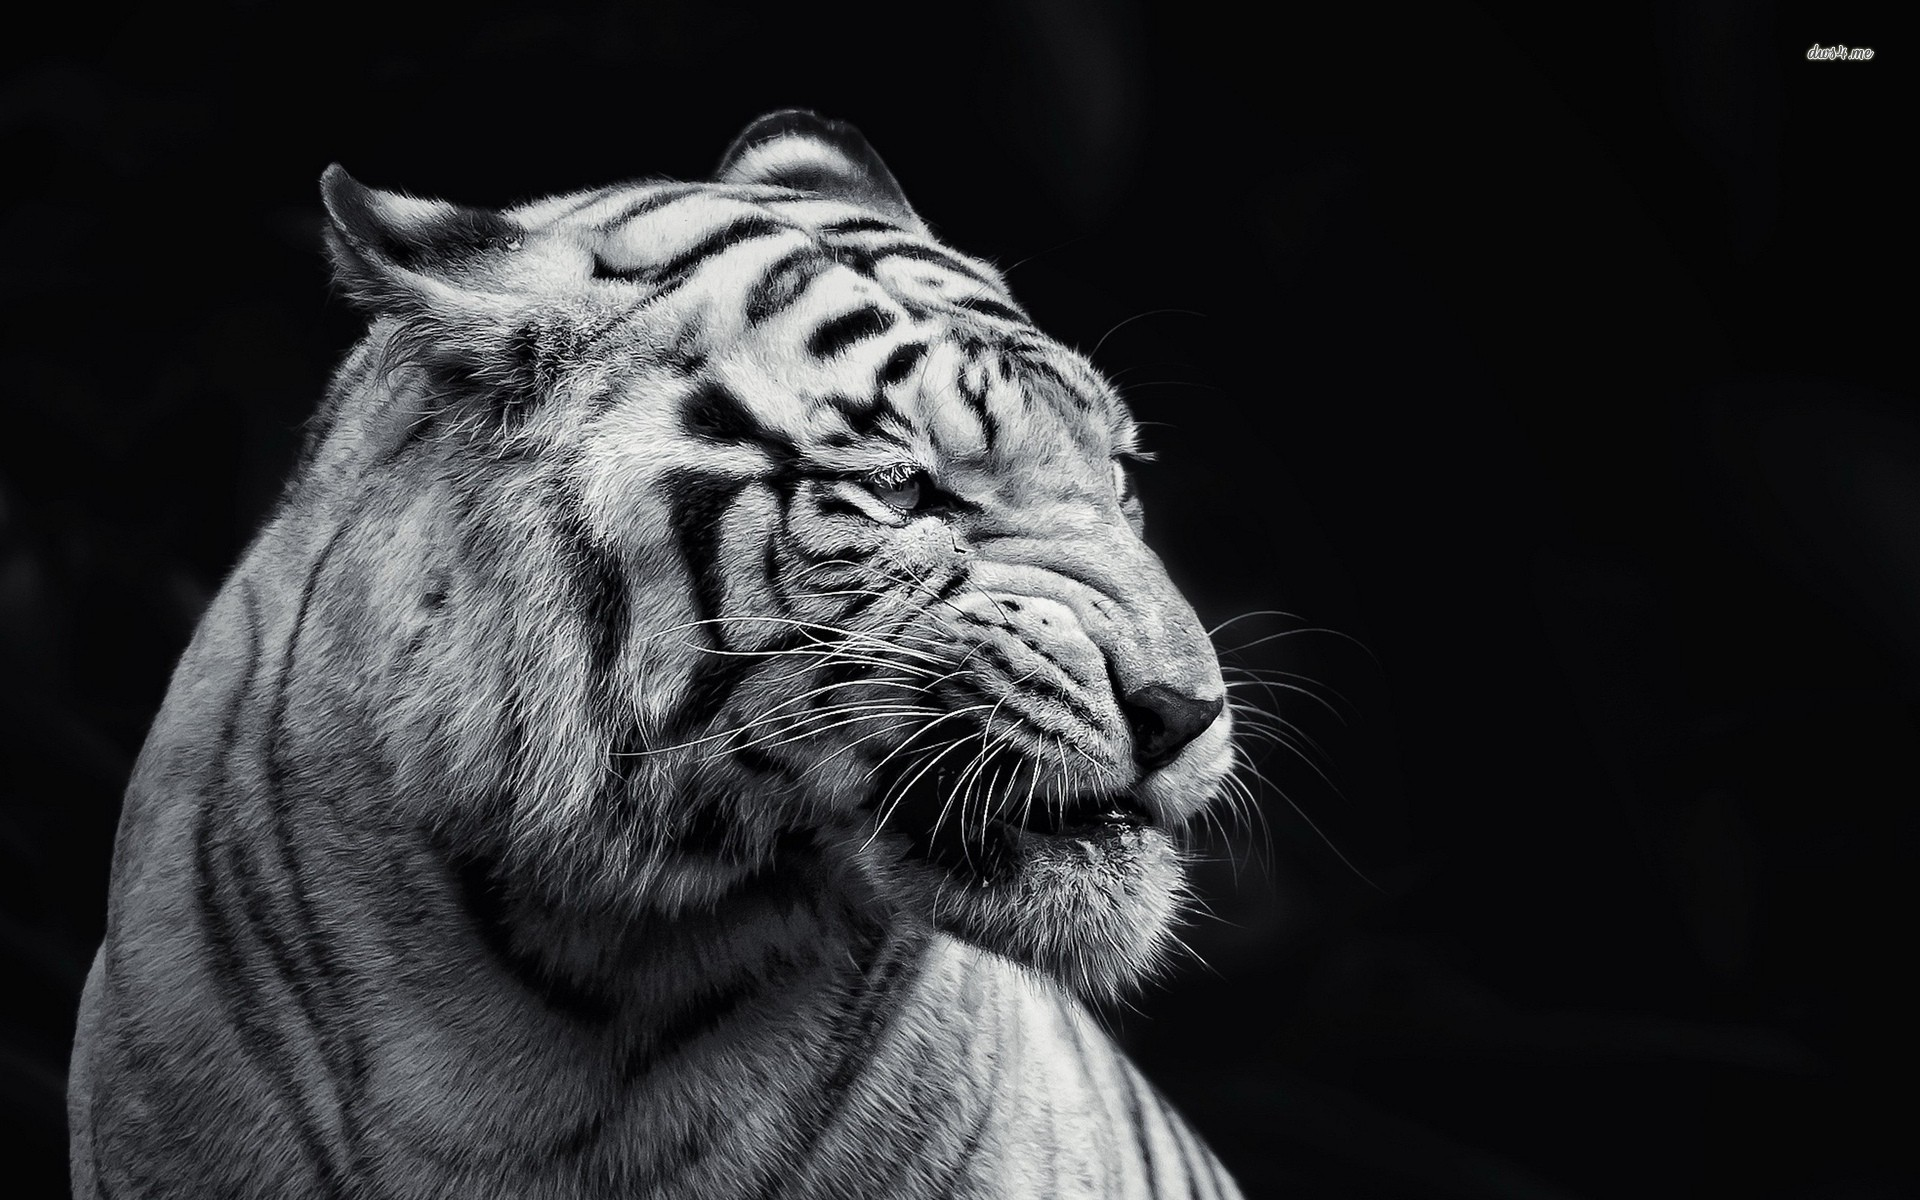 Black And White Animal Wallpaper - WallpaperSafari